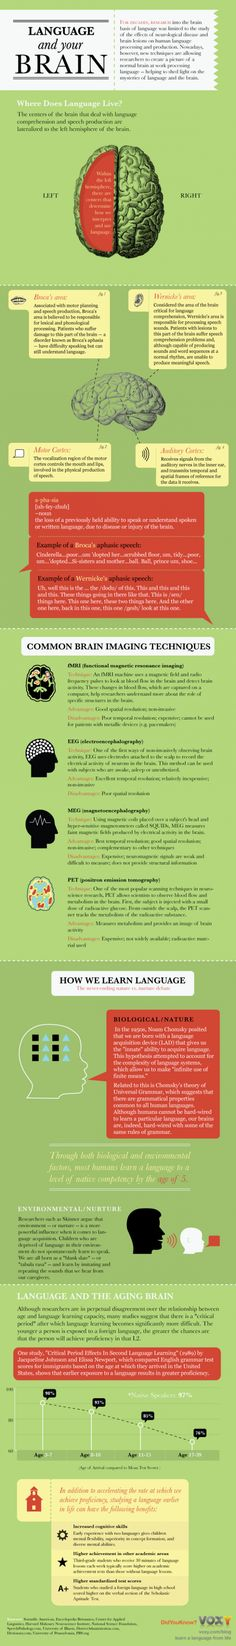 Language and Your Brain Infographic. Super interesting!